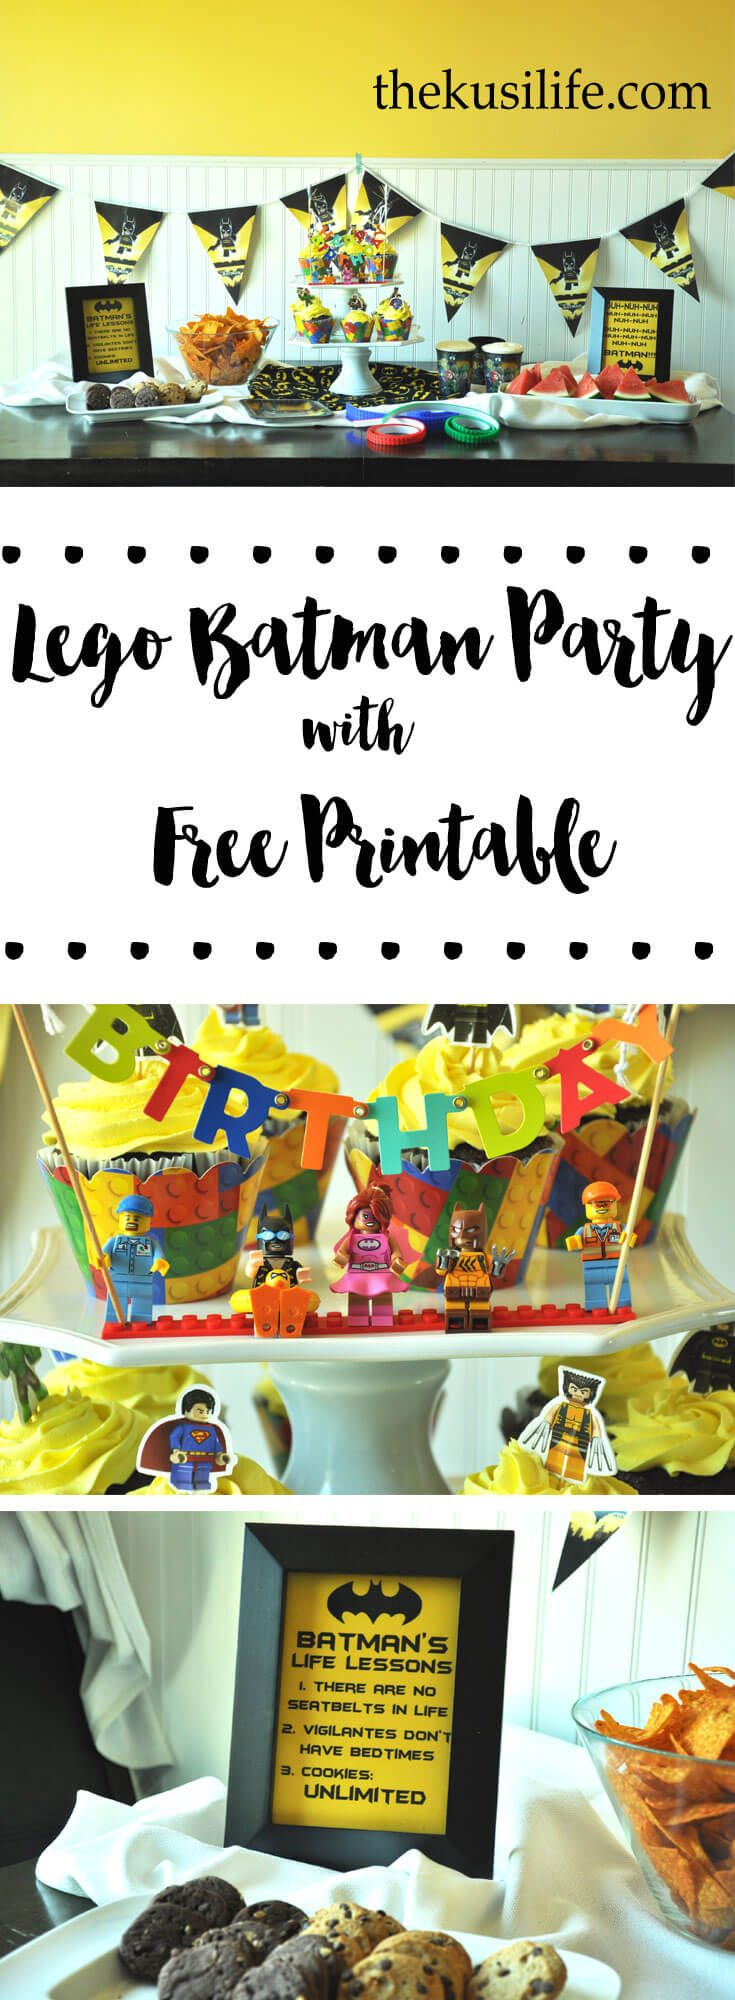 Lego Batman Movie Party & Free Printables - The Master Builders in your life will love this party theme! Fun ideas for a simple, yet epic party along with 2 free printables - thekusilife.com via @thekusilife